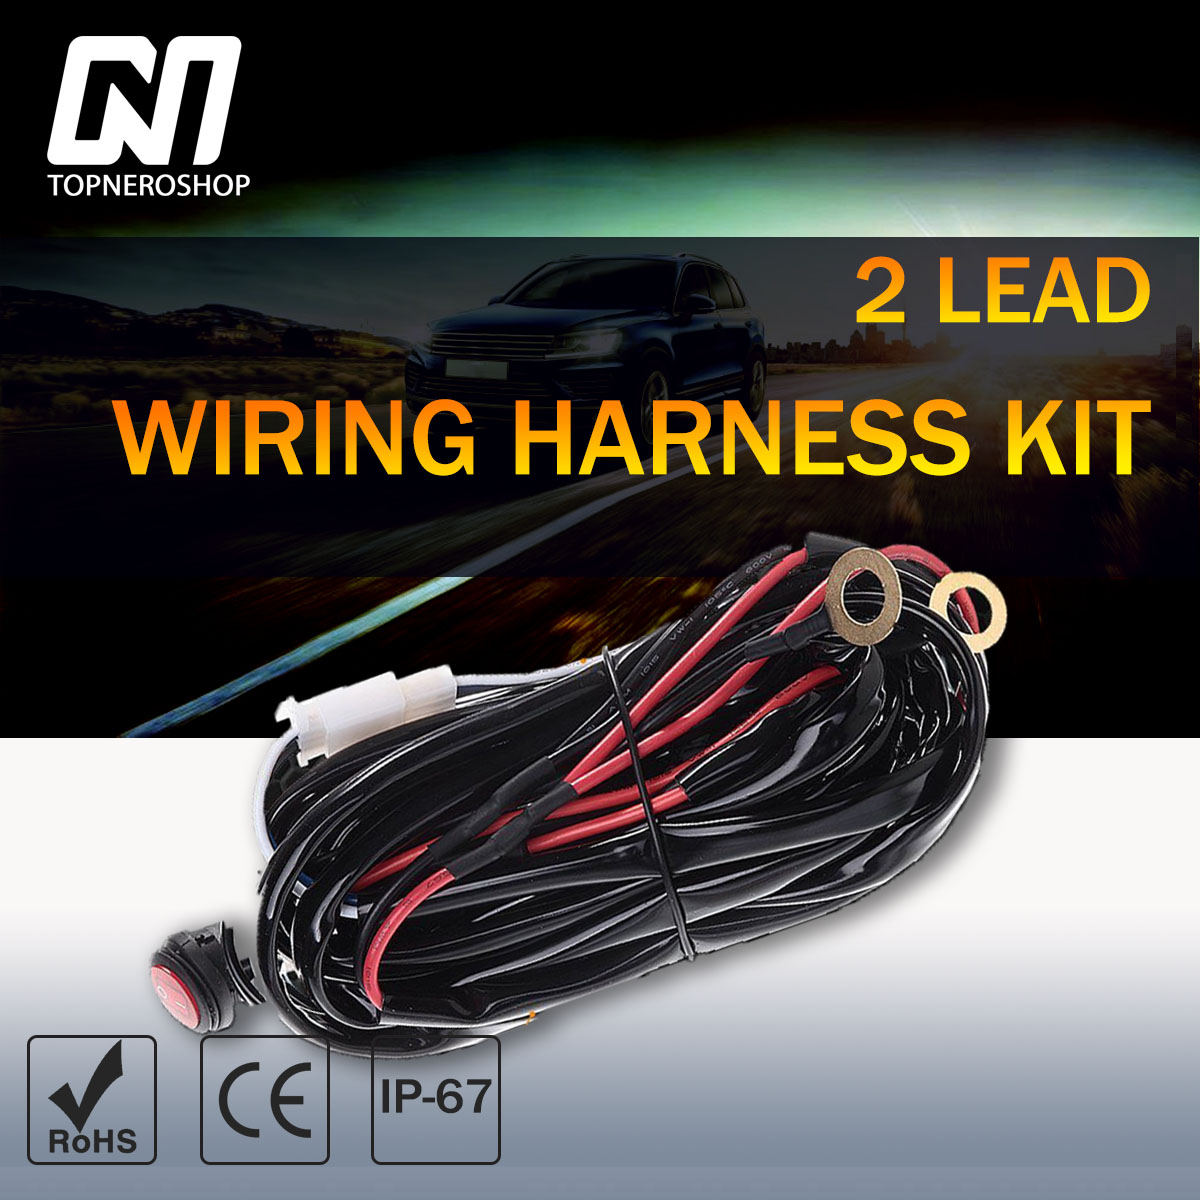 2 Lead Wiring Harness Kit 12v W Remote Control On Off Switch For Atv Ford Jeep